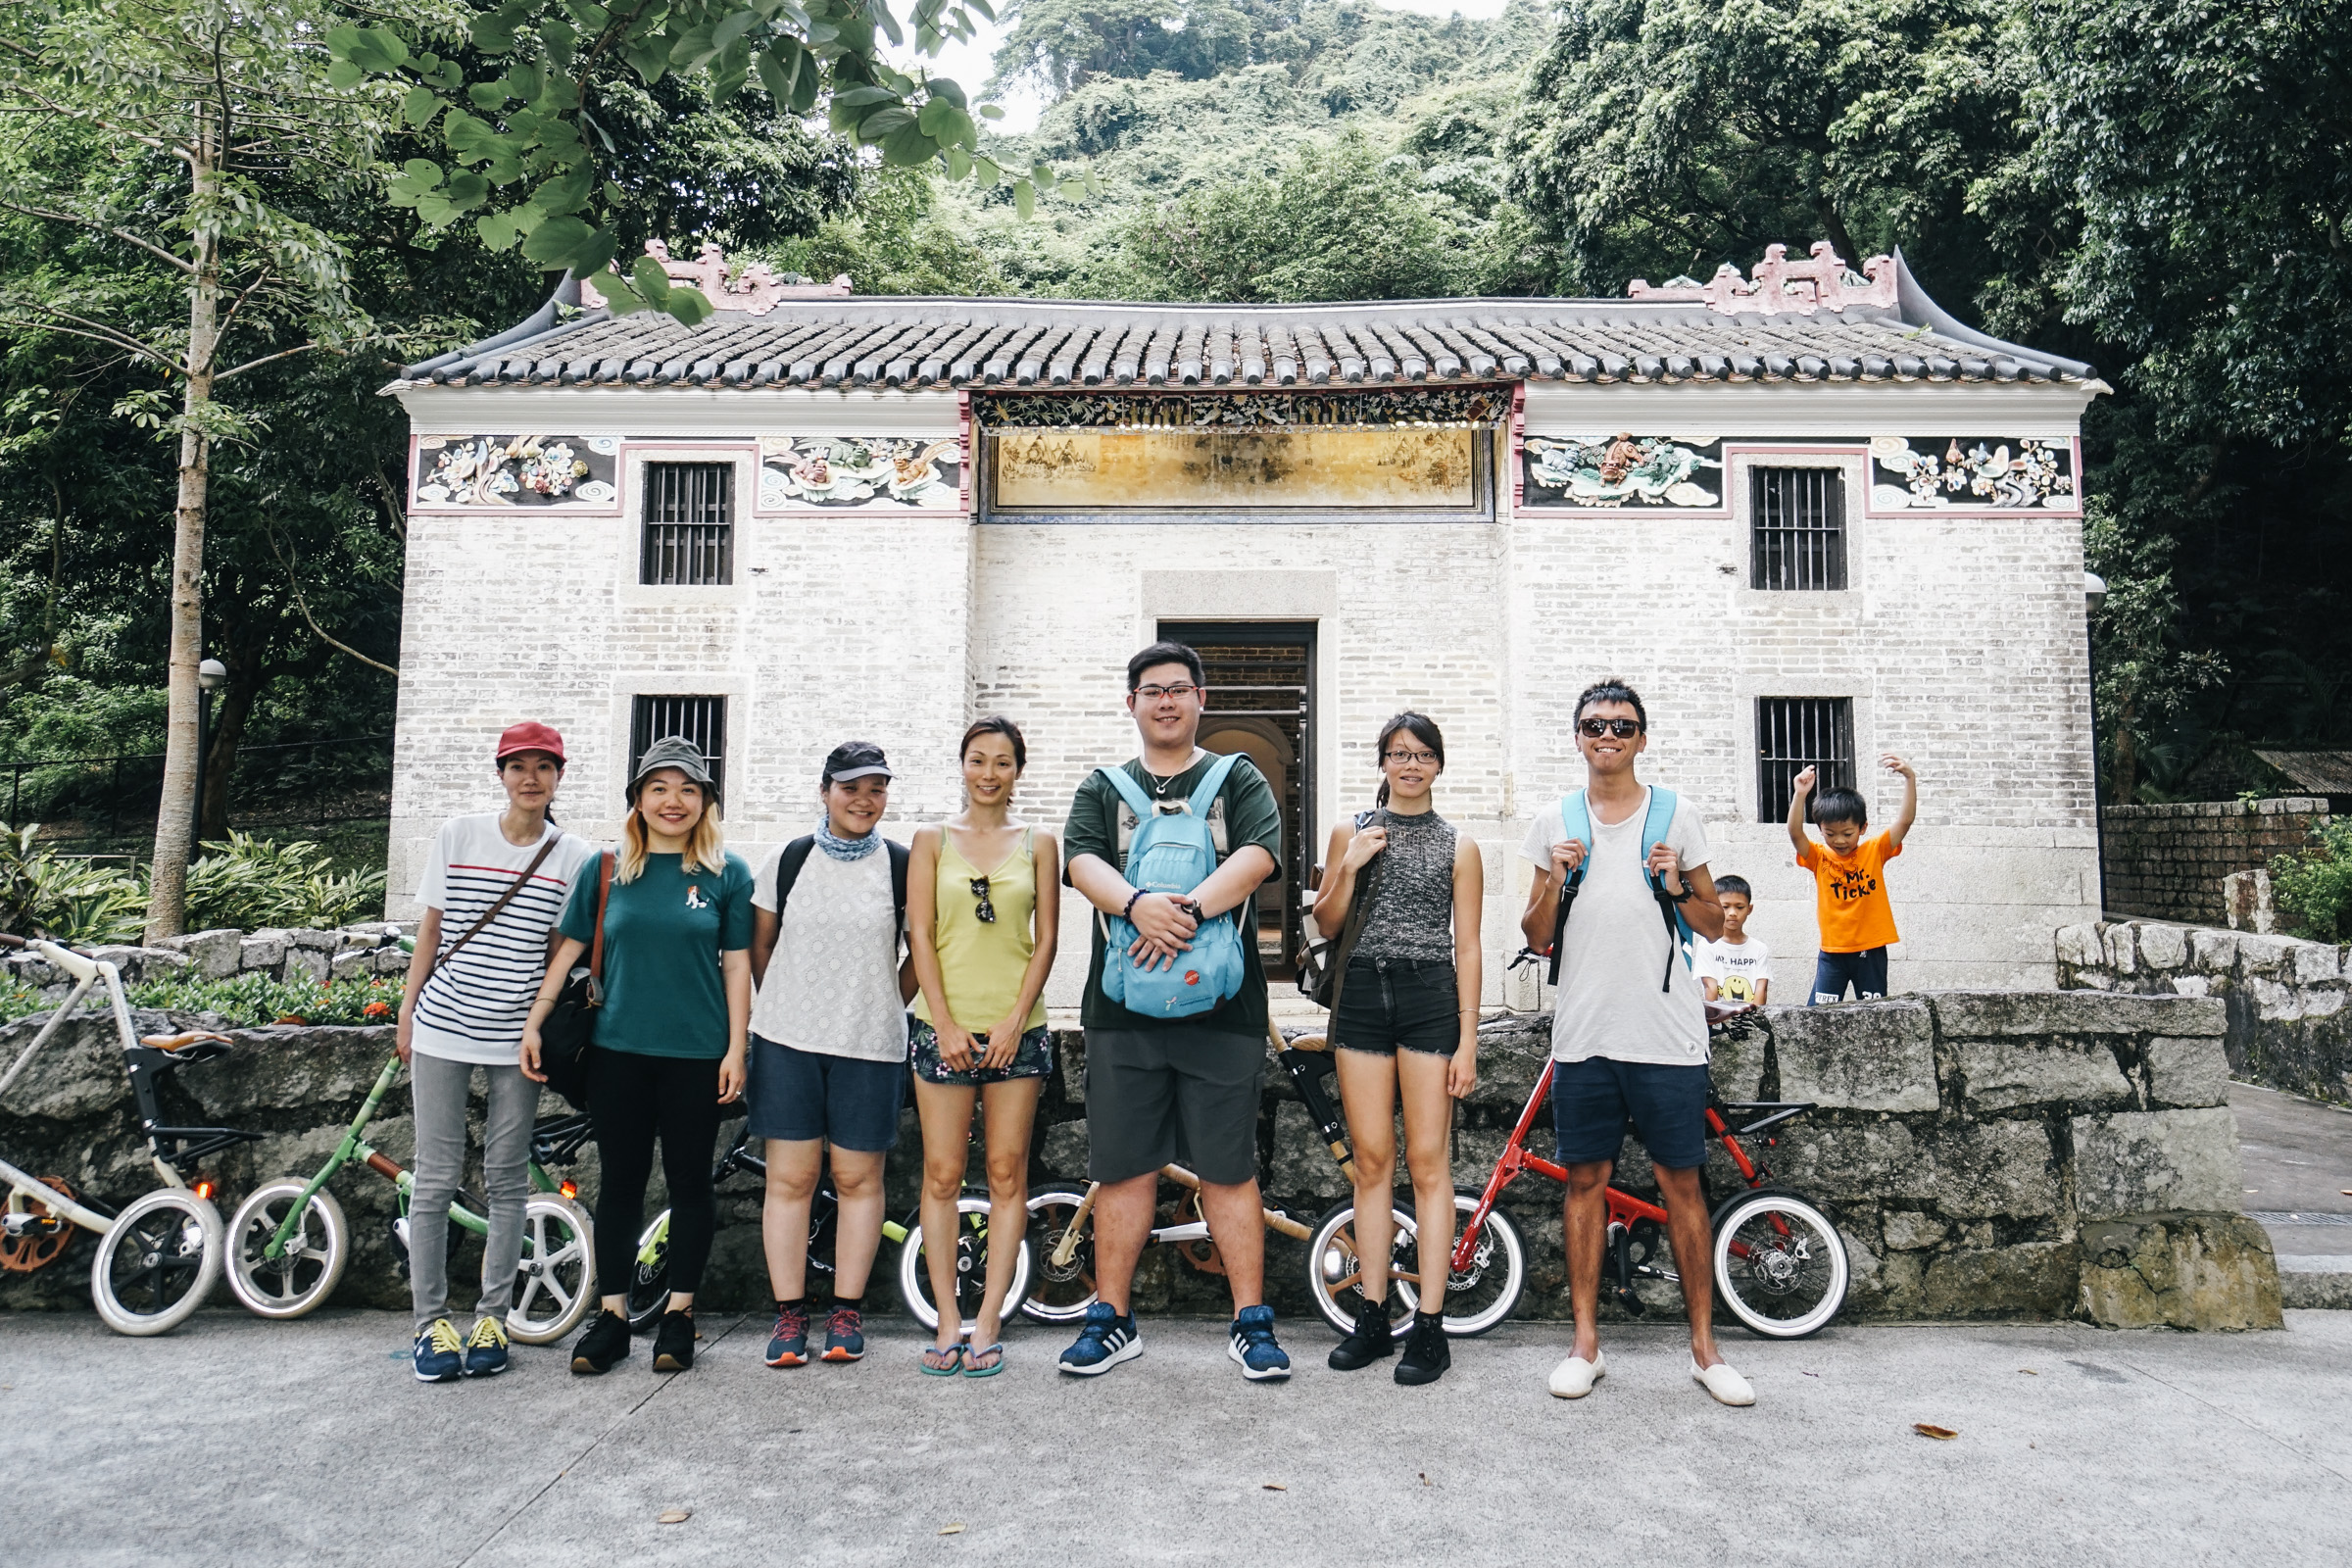 #iheartaipo bike ride